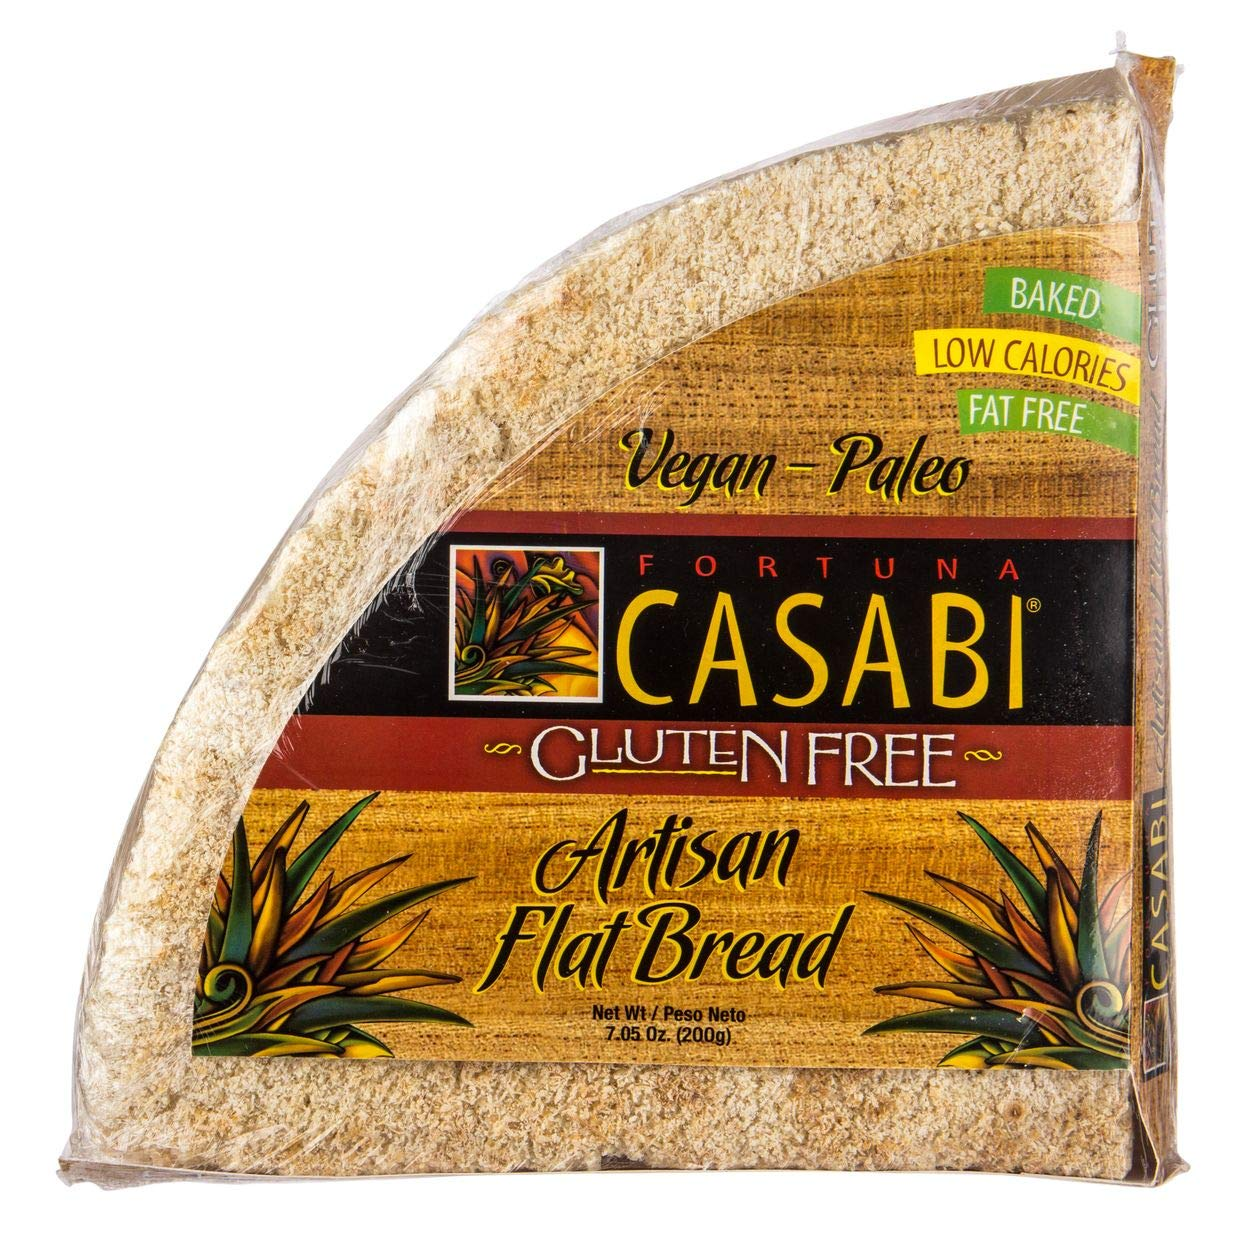 Casabi Casabe Artisan Flatbread (Cassava Bread), Naturally Gluten-Free (GF), Vegan, Paleo, Low Fodmap, AIP Friendly, Made of 100% Yuca Root. 7 oz/pack (2-pack)